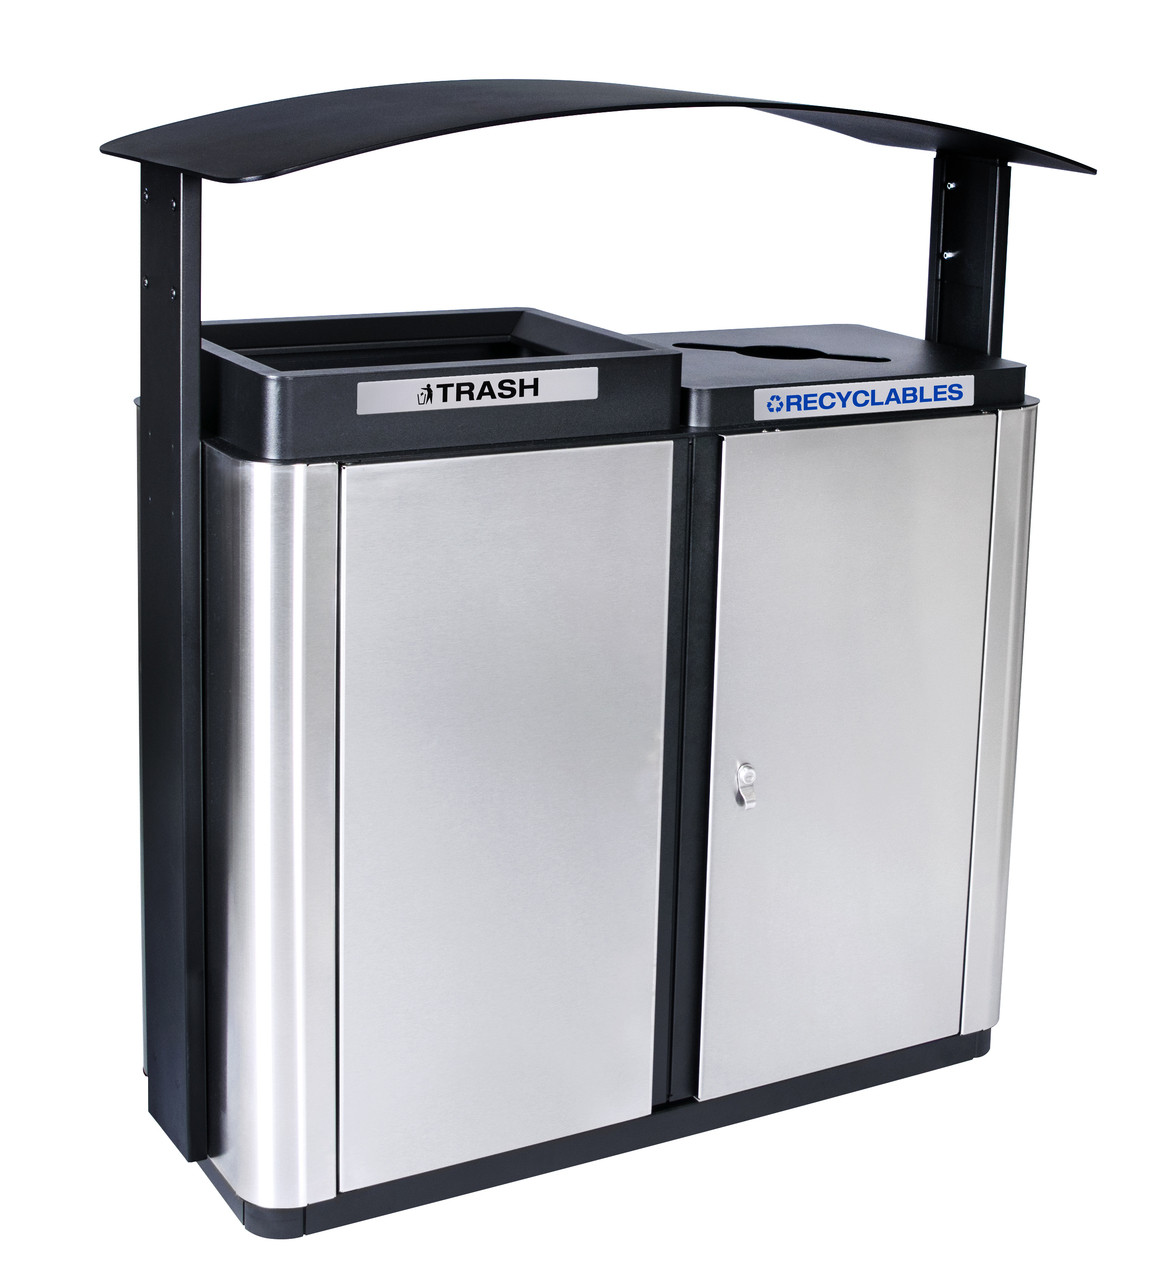 70 Gallon Echelon Outdoor Two Stream Recycling Receptacle ECHX2 (1 Waste, 1 Mixed Opening)